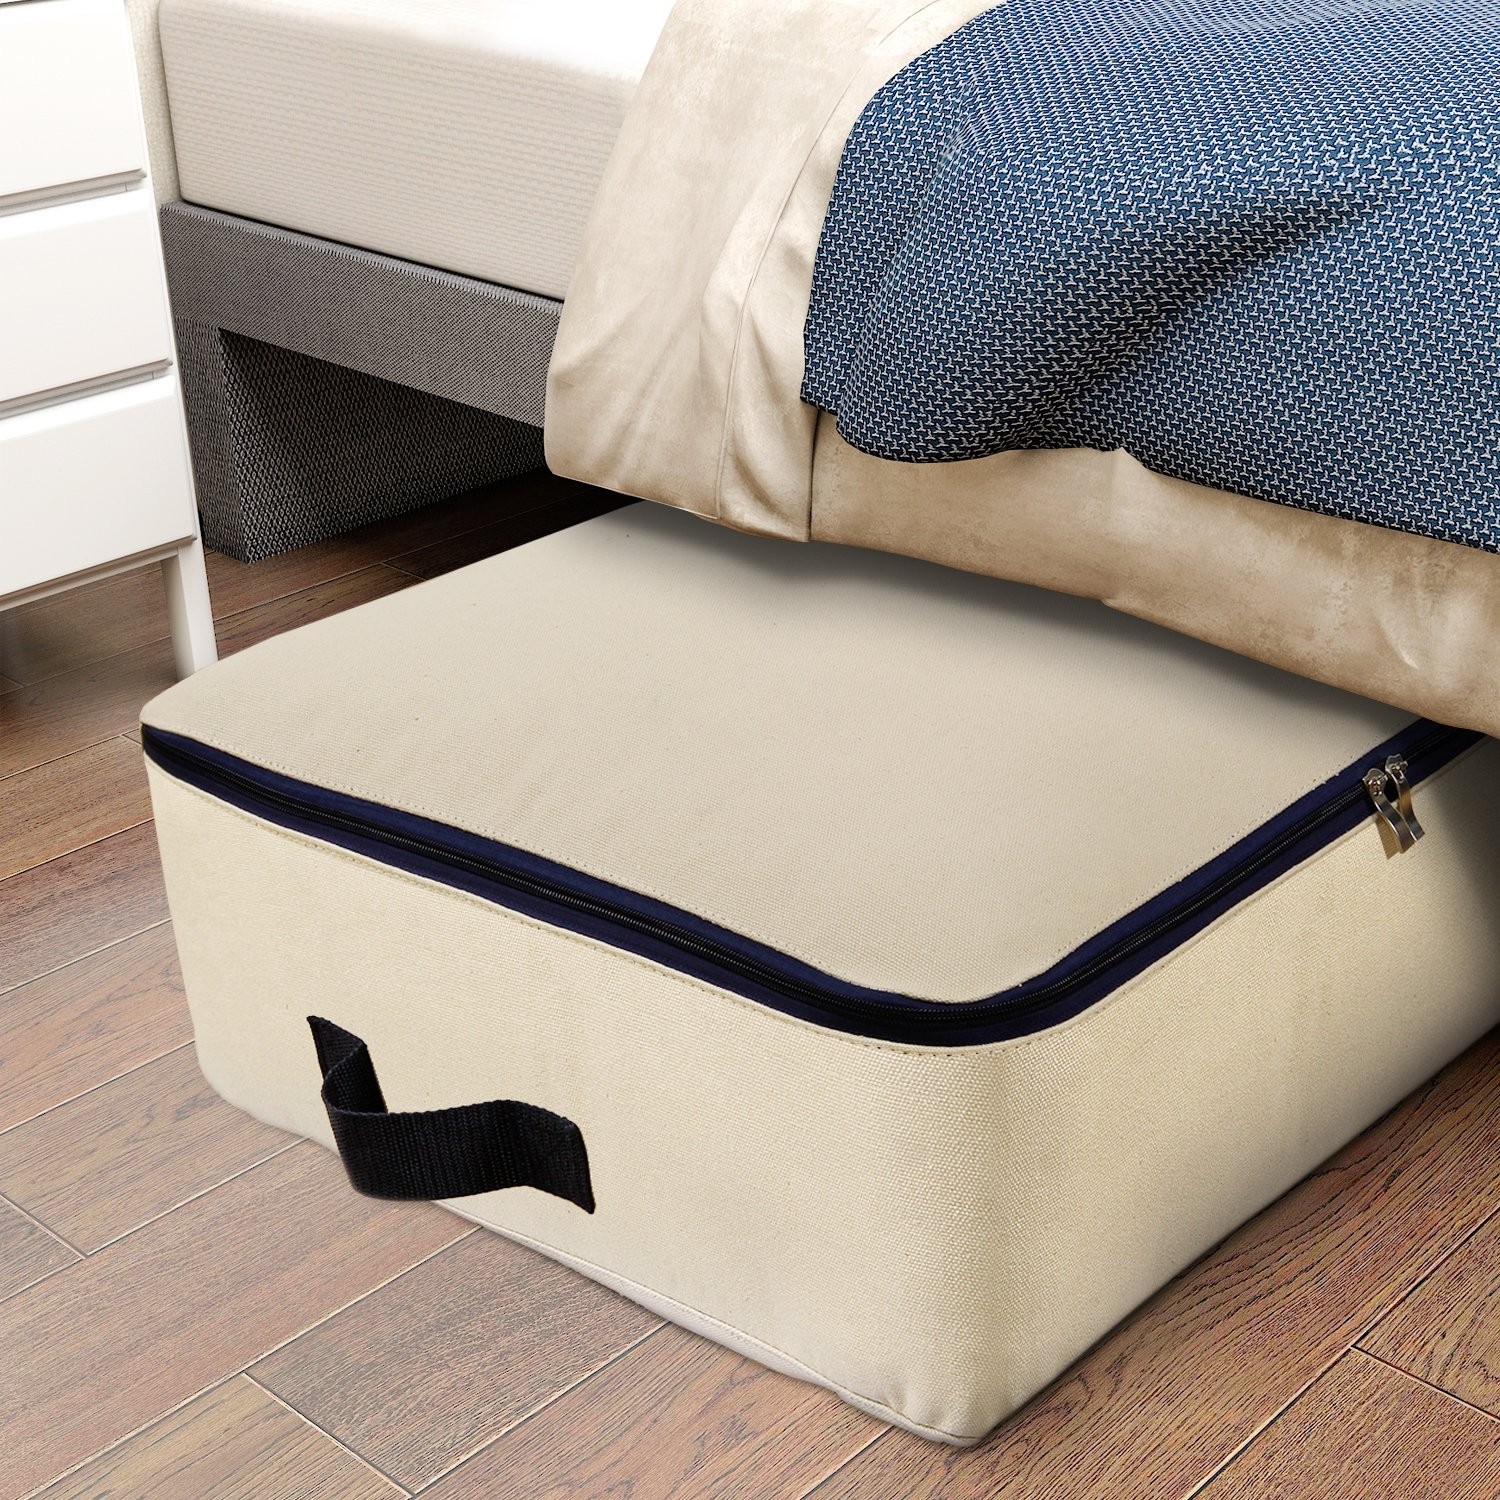 of underbed decoration under ideas modern storage ikea with new underneath bed plastic image drawers